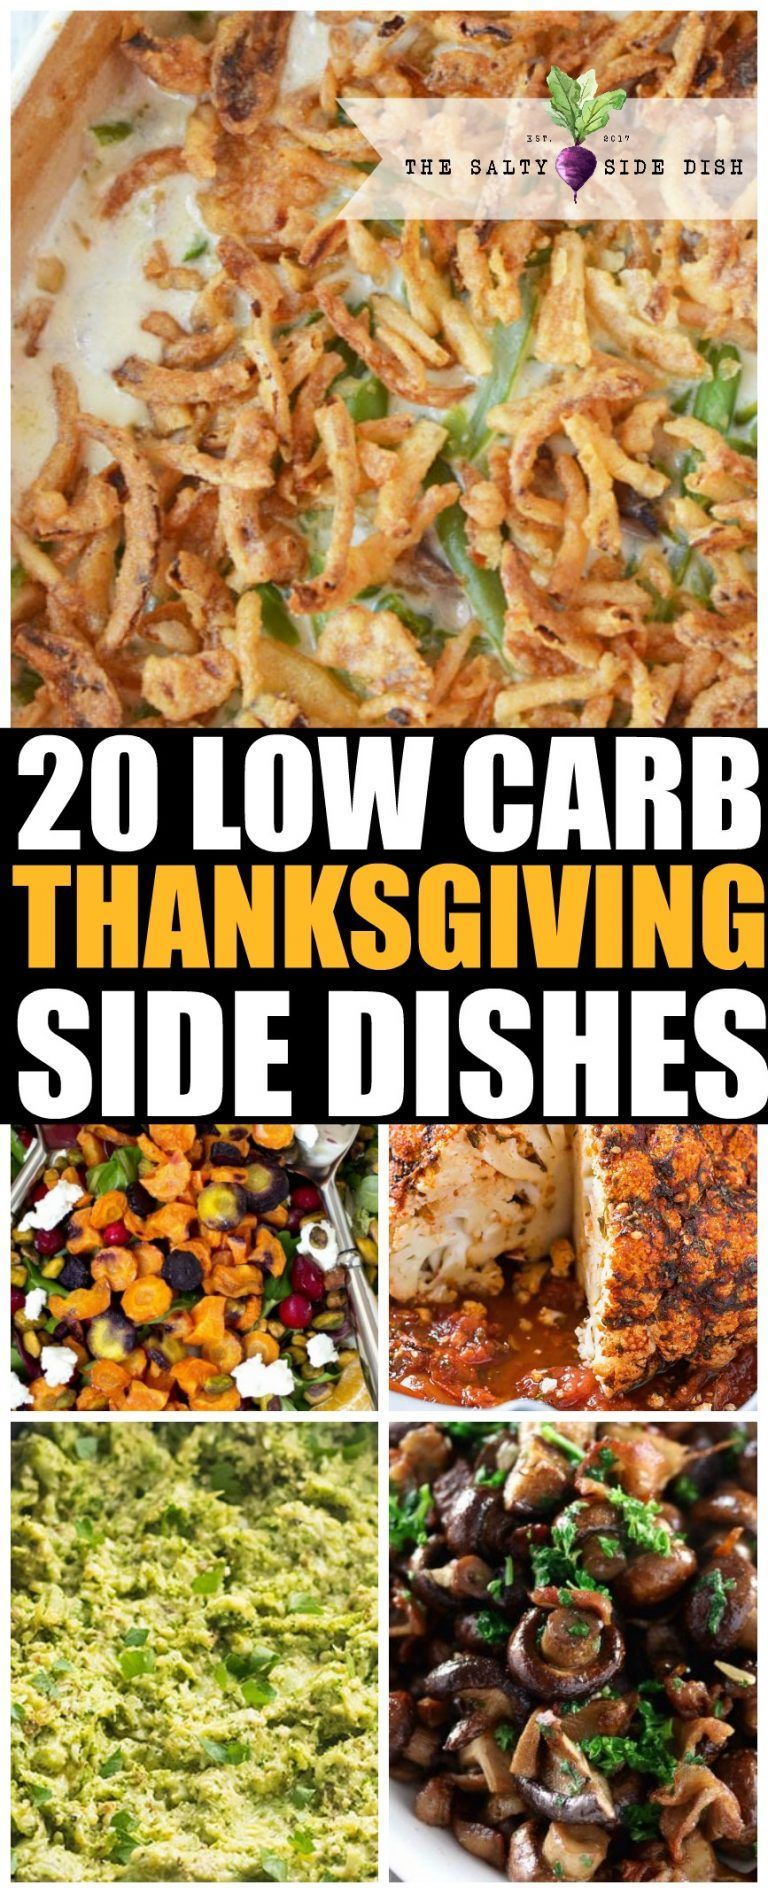 Low Carb Side Dishes that are perfect for Thanksgiving, Christmas, and all the days in between?  20 of the top side dish recipes that wont make you miss carbs at all! #lowcarb #keto #KF #LC #thanskgiving #sidedishes #tacosidedishes Low Carb Side Dishes that are perfect for Thanksgiving, Christmas, and all the days in between?  20 of the top side dish recipes that wont make you miss carbs at all! #lowcarb #keto #KF #LC #thanskgiving #sidedishes #tacosidedishes